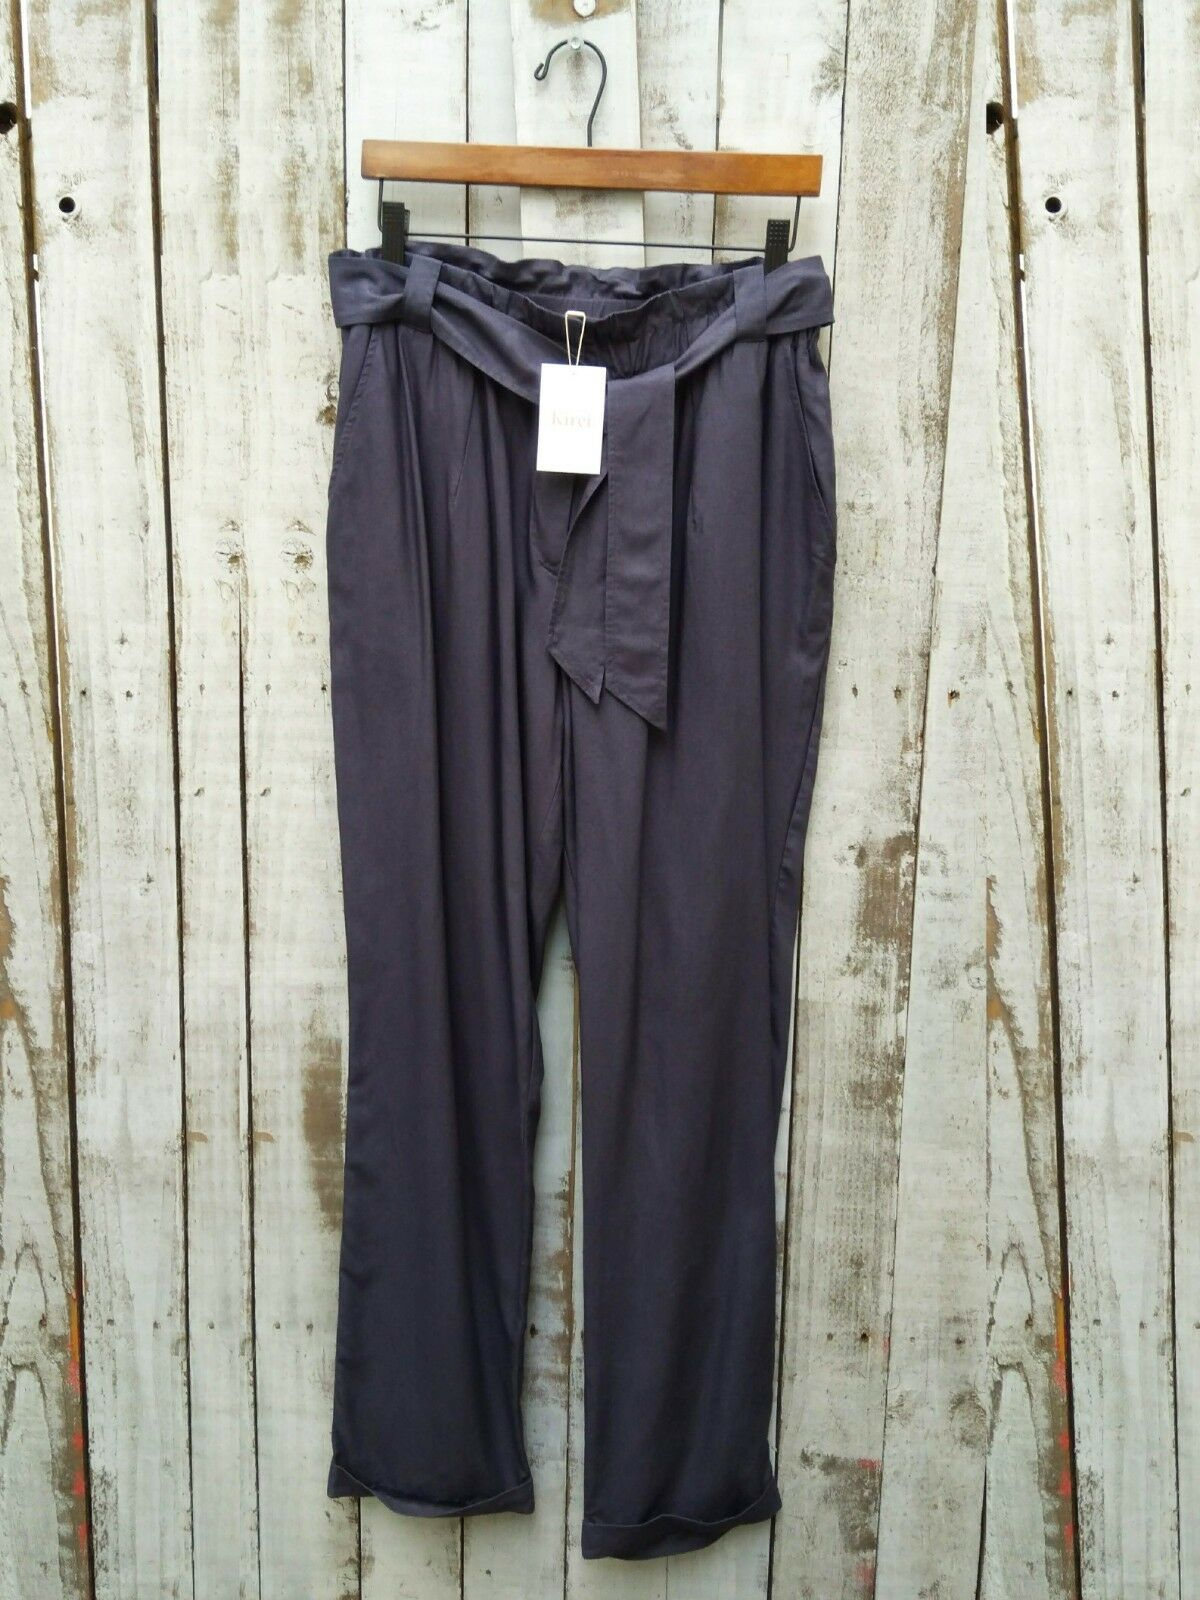 Kirei Front Tie Trousers Größe  M   Was Selling At Anthropologie ¨¨New¨¨